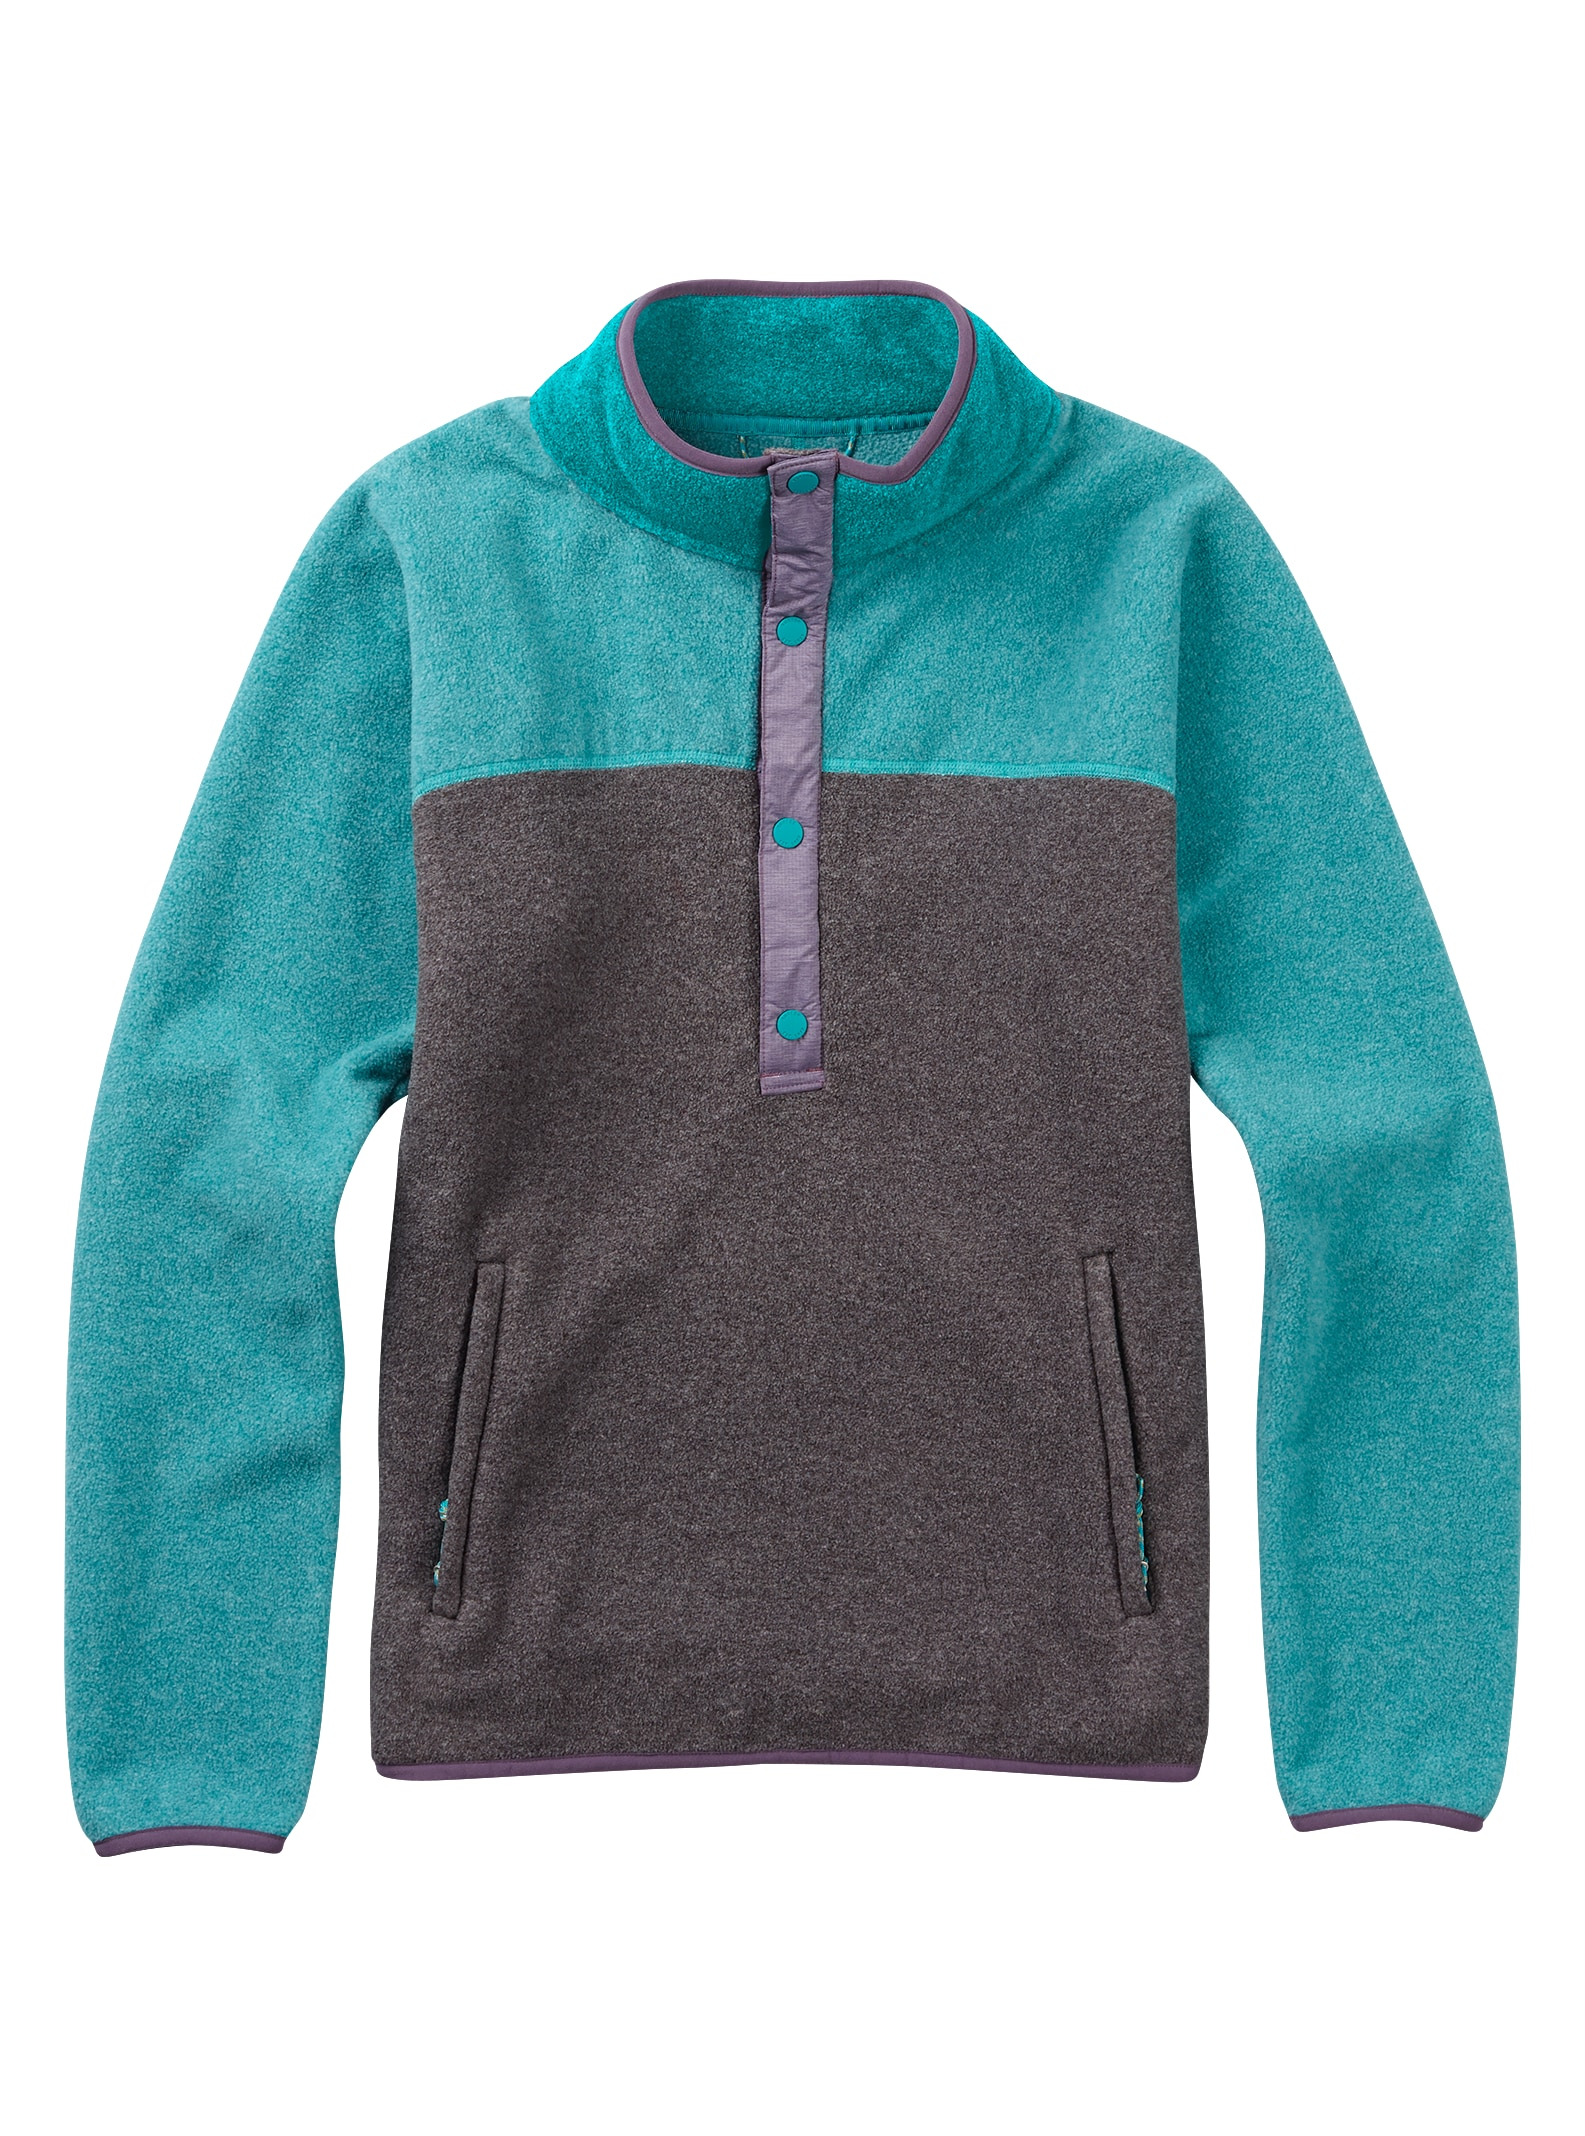 Burton Anouk Fleece-Pullover angezeigt in Phantom Heather / Everglade